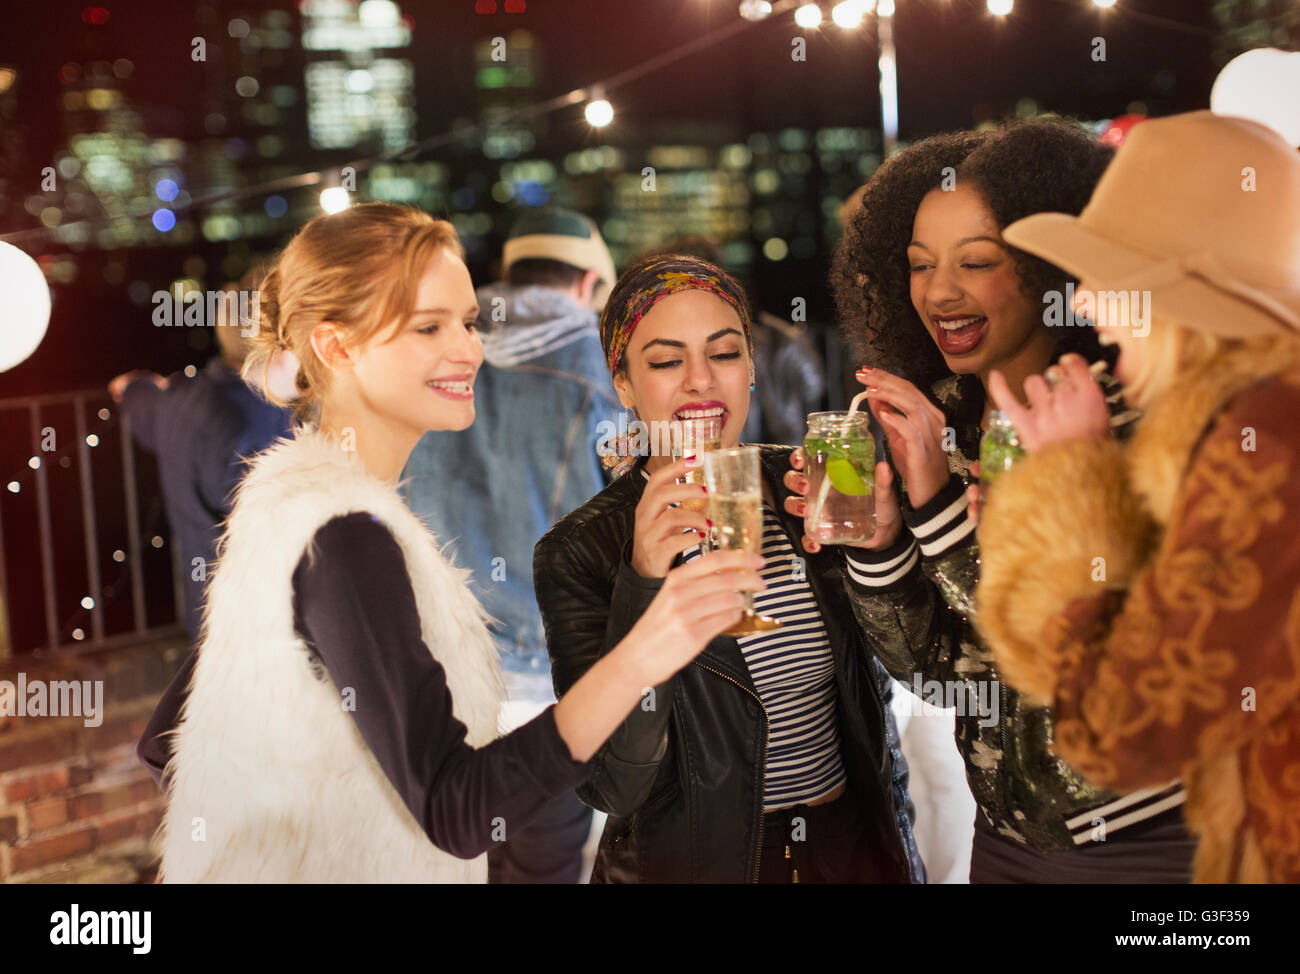 Young women drinking and enjoying rooftop party - Stock Image